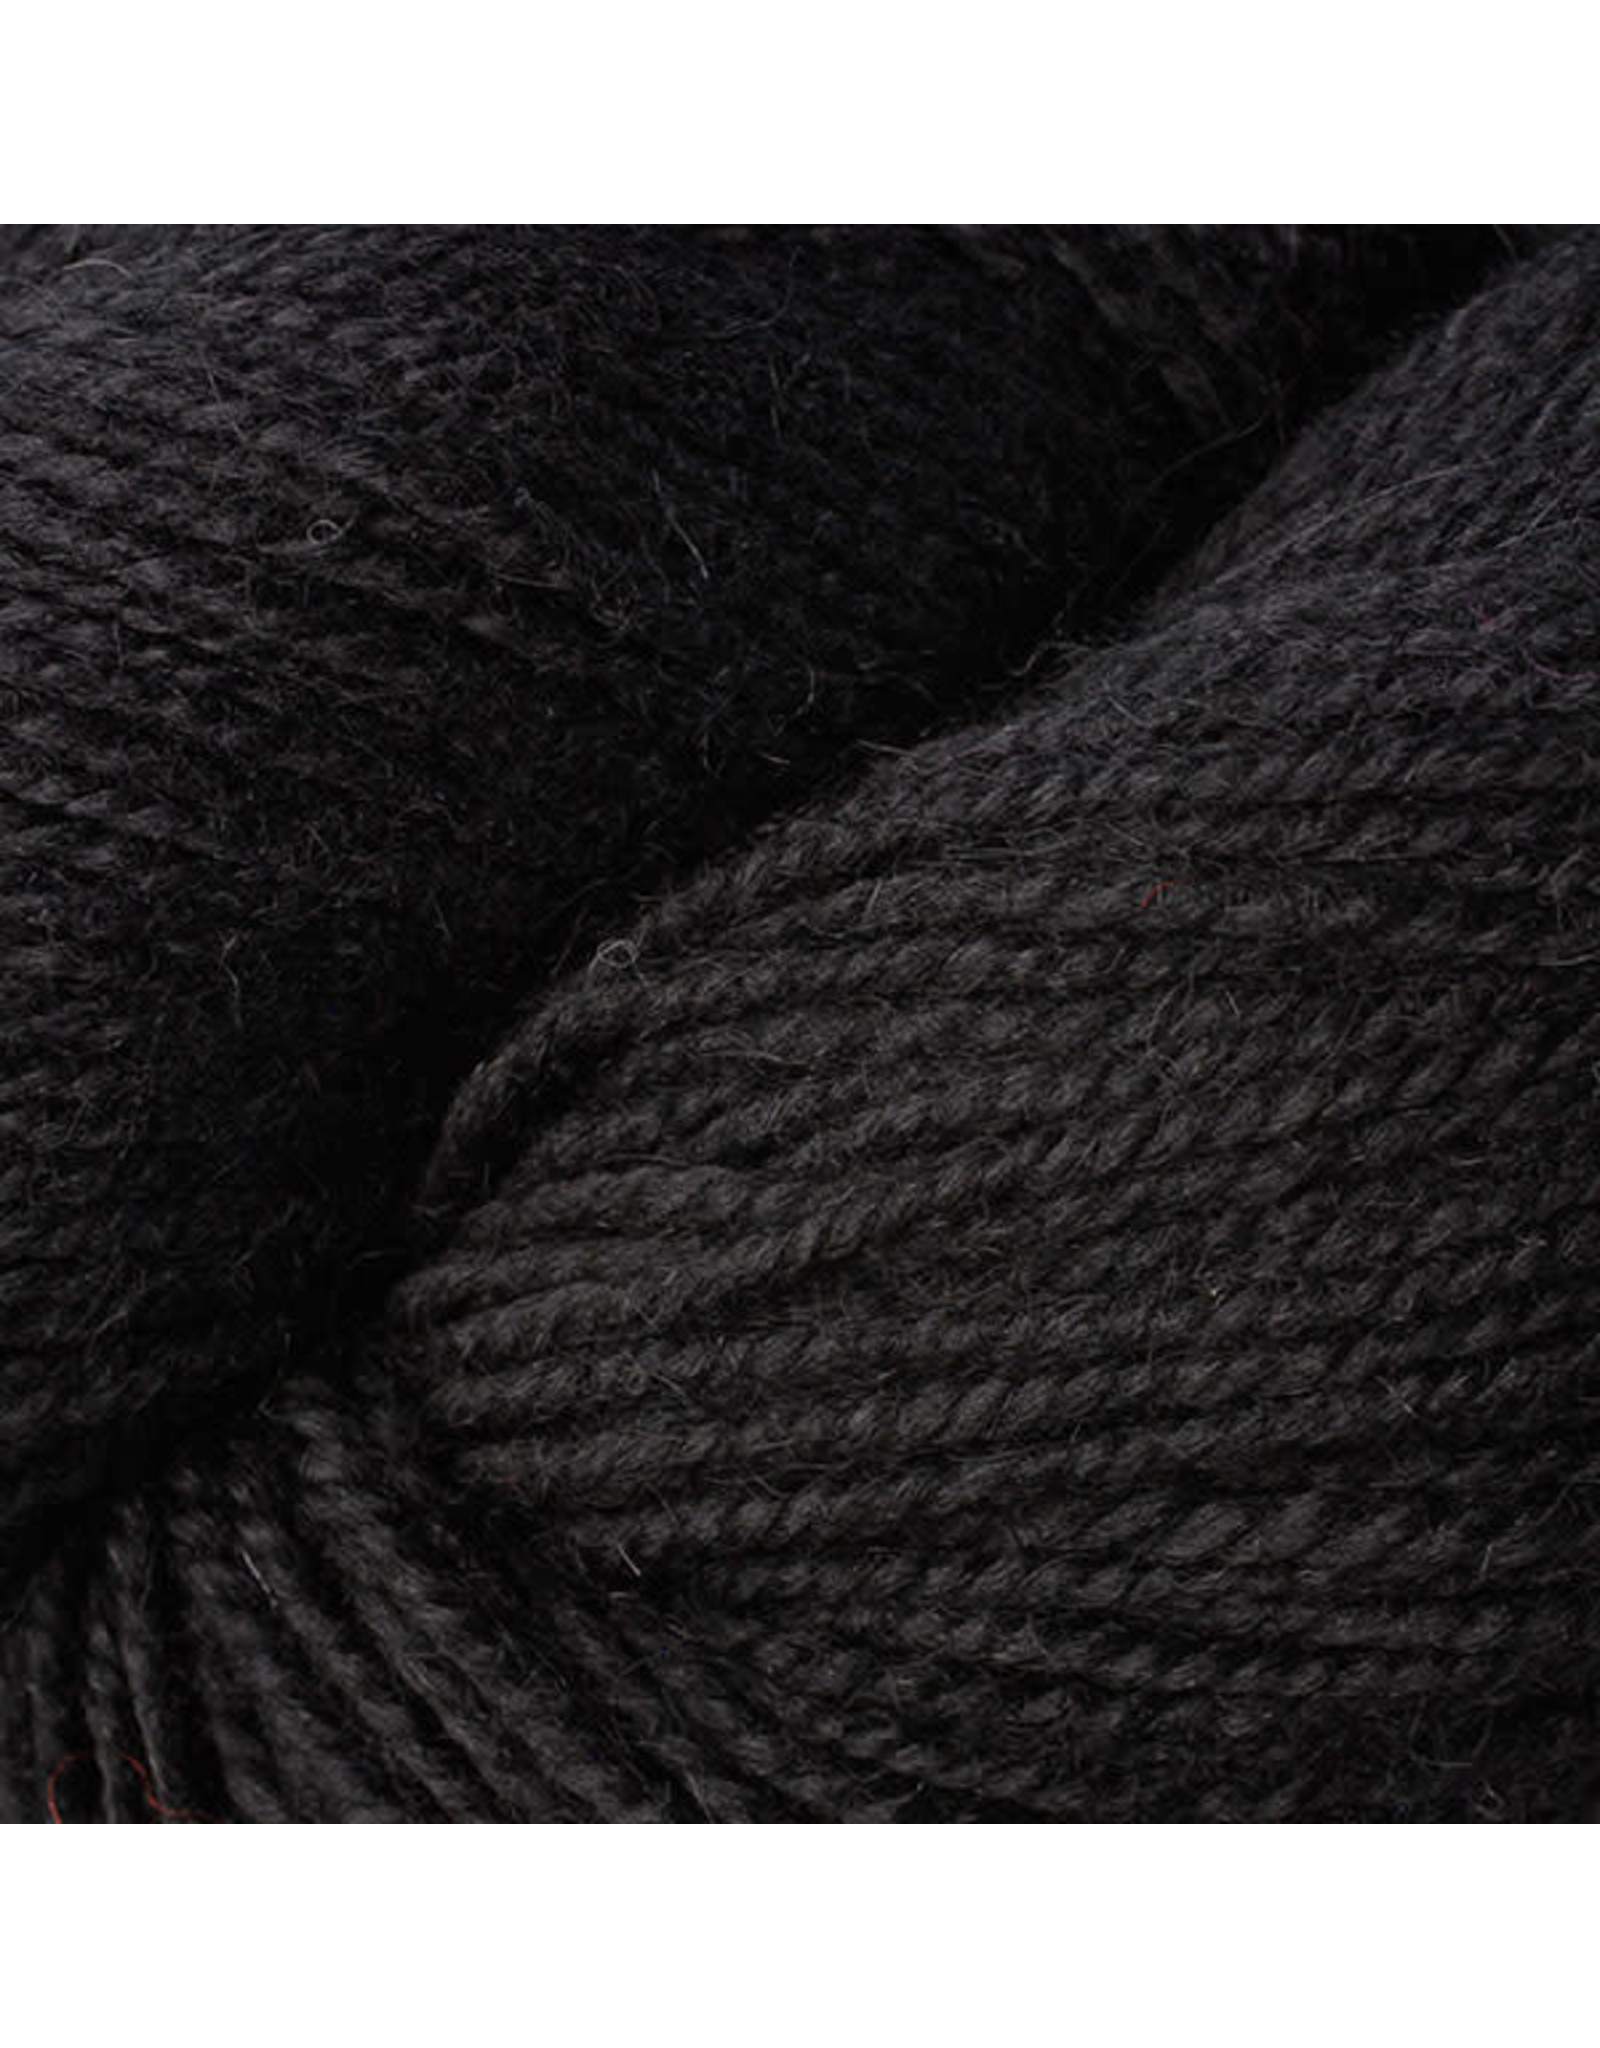 6245 Pitch Black - Ultra Alpaca - Berroco